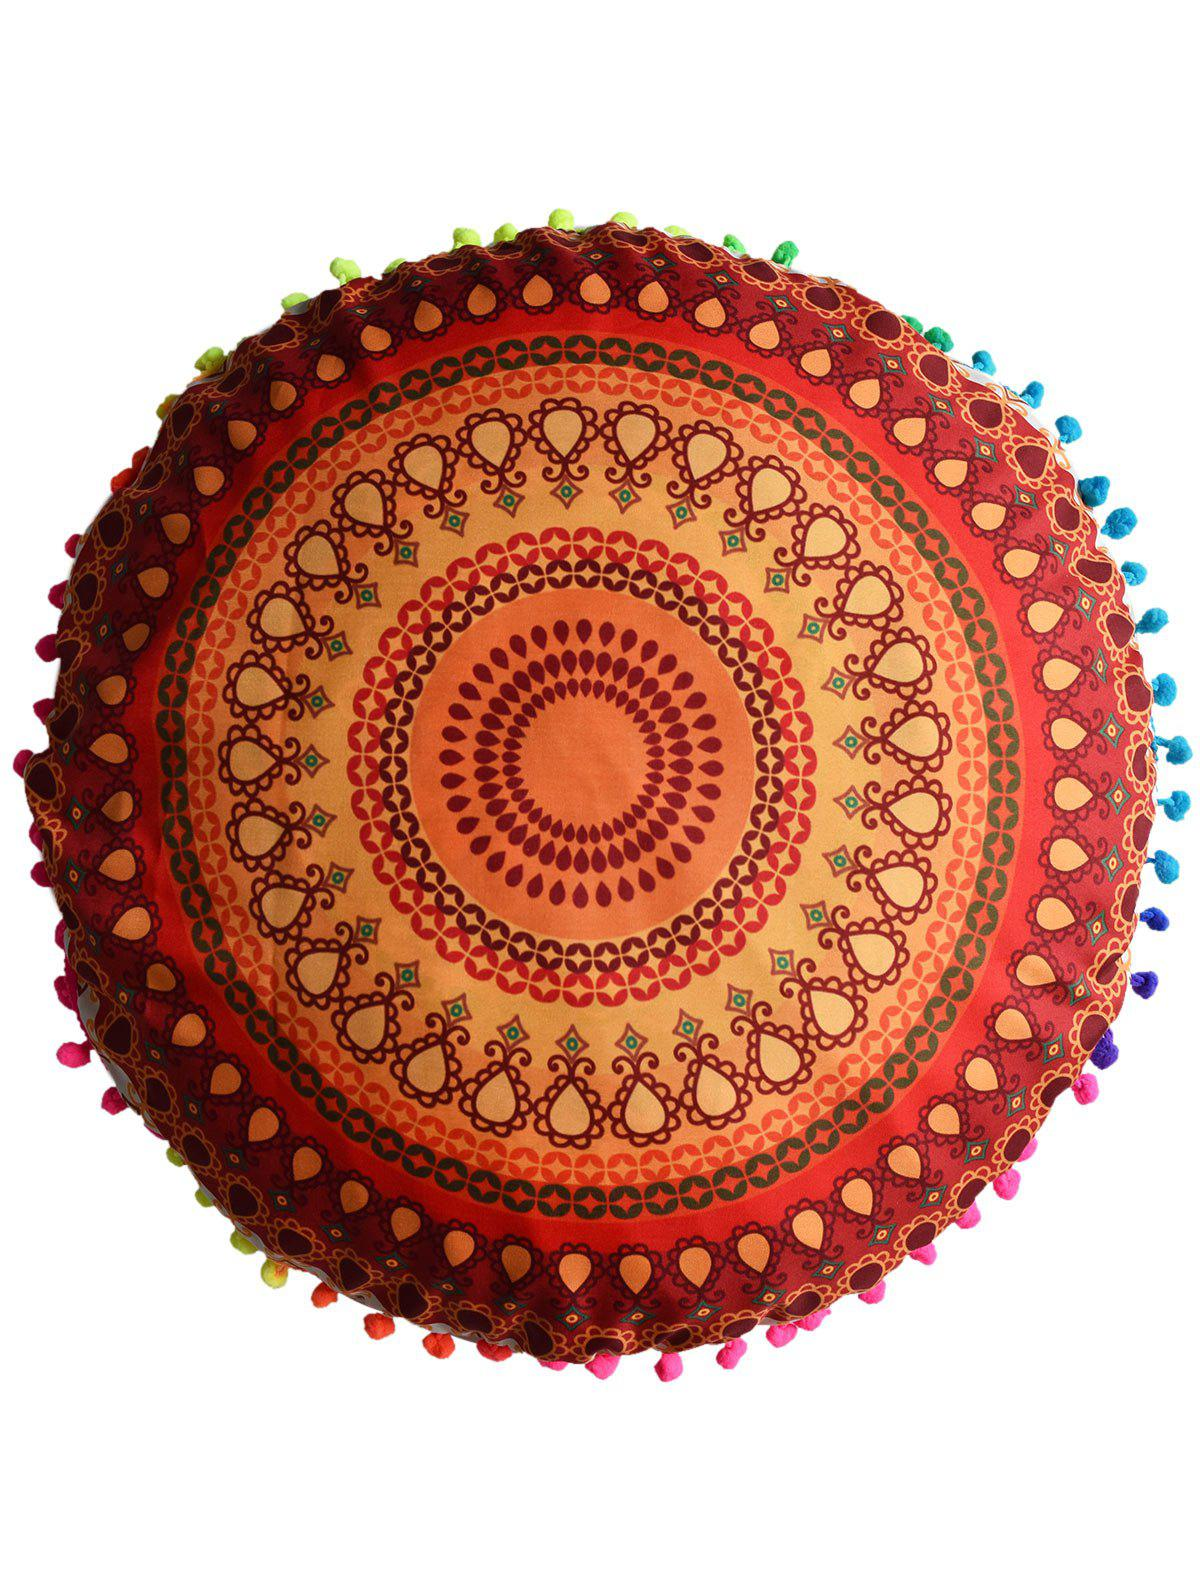 Mandala Printed Floor Round Cushion PillowcaseHOME<br><br>Size: DIAMETER: 45CM; Color: ORANGE RED; Material: Polyester / Cotton; Pattern: Floral; Style: Accent/Decorative; Shape: Round; Weight: 0.0500kg; Package Contents: 1 x Pillow Case;